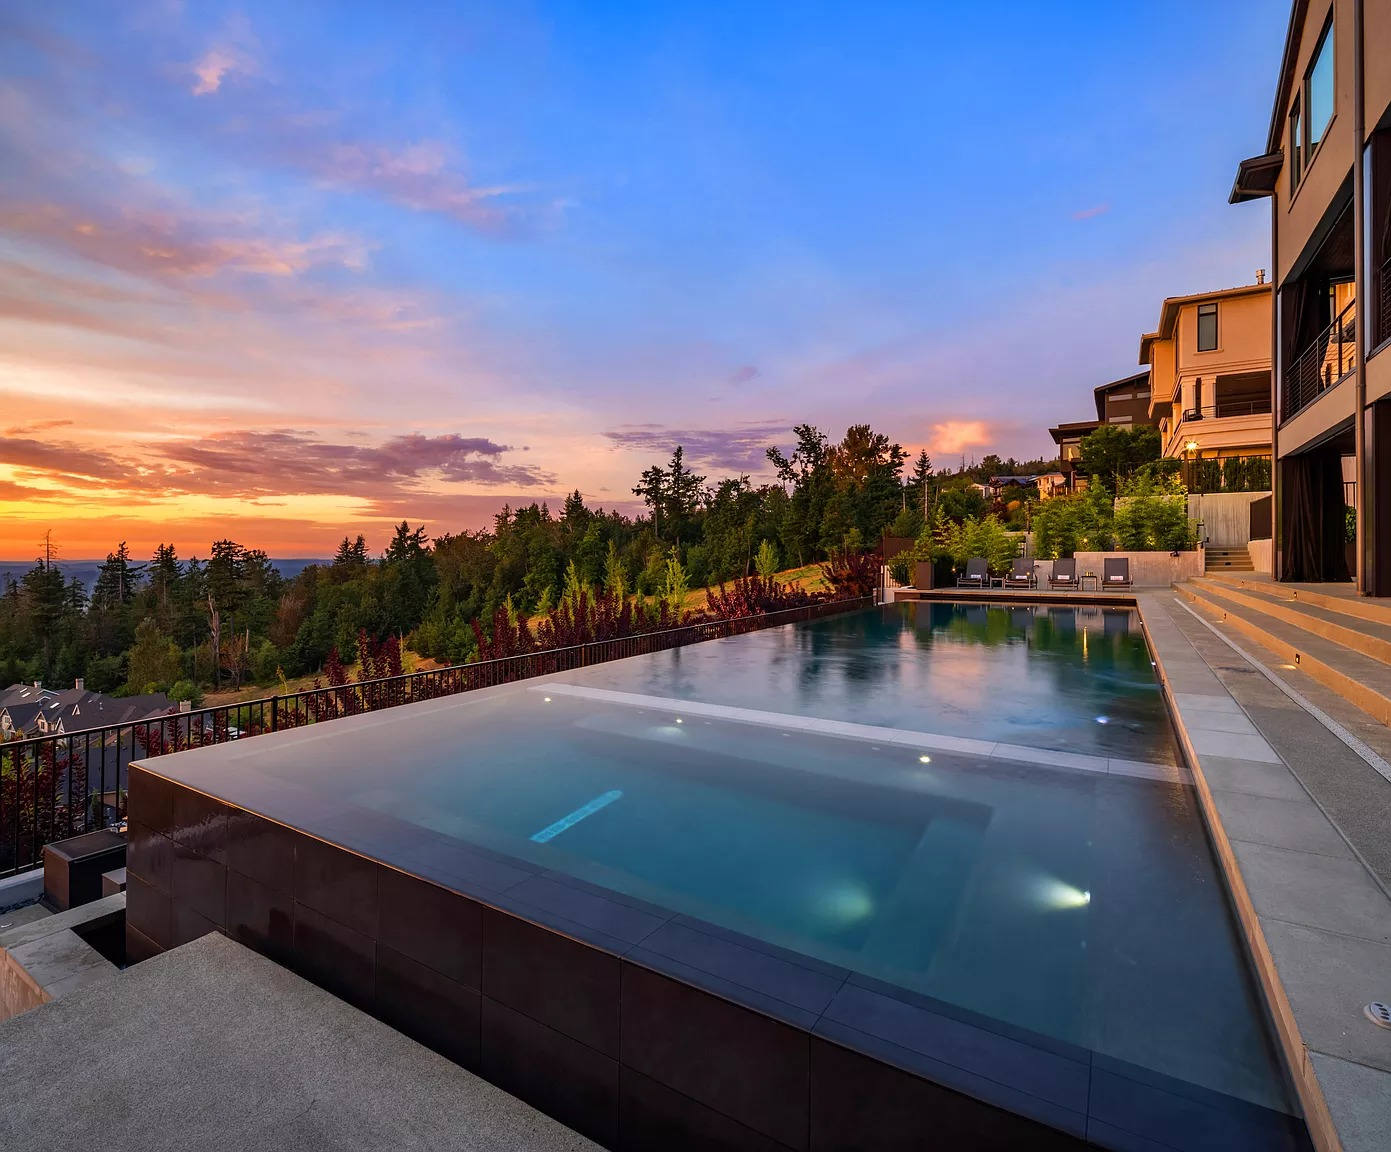 3174 NE Harrison St, Issaquah, WA 98029 - $6,300,000 home for sale, house images, photos and pics gallery